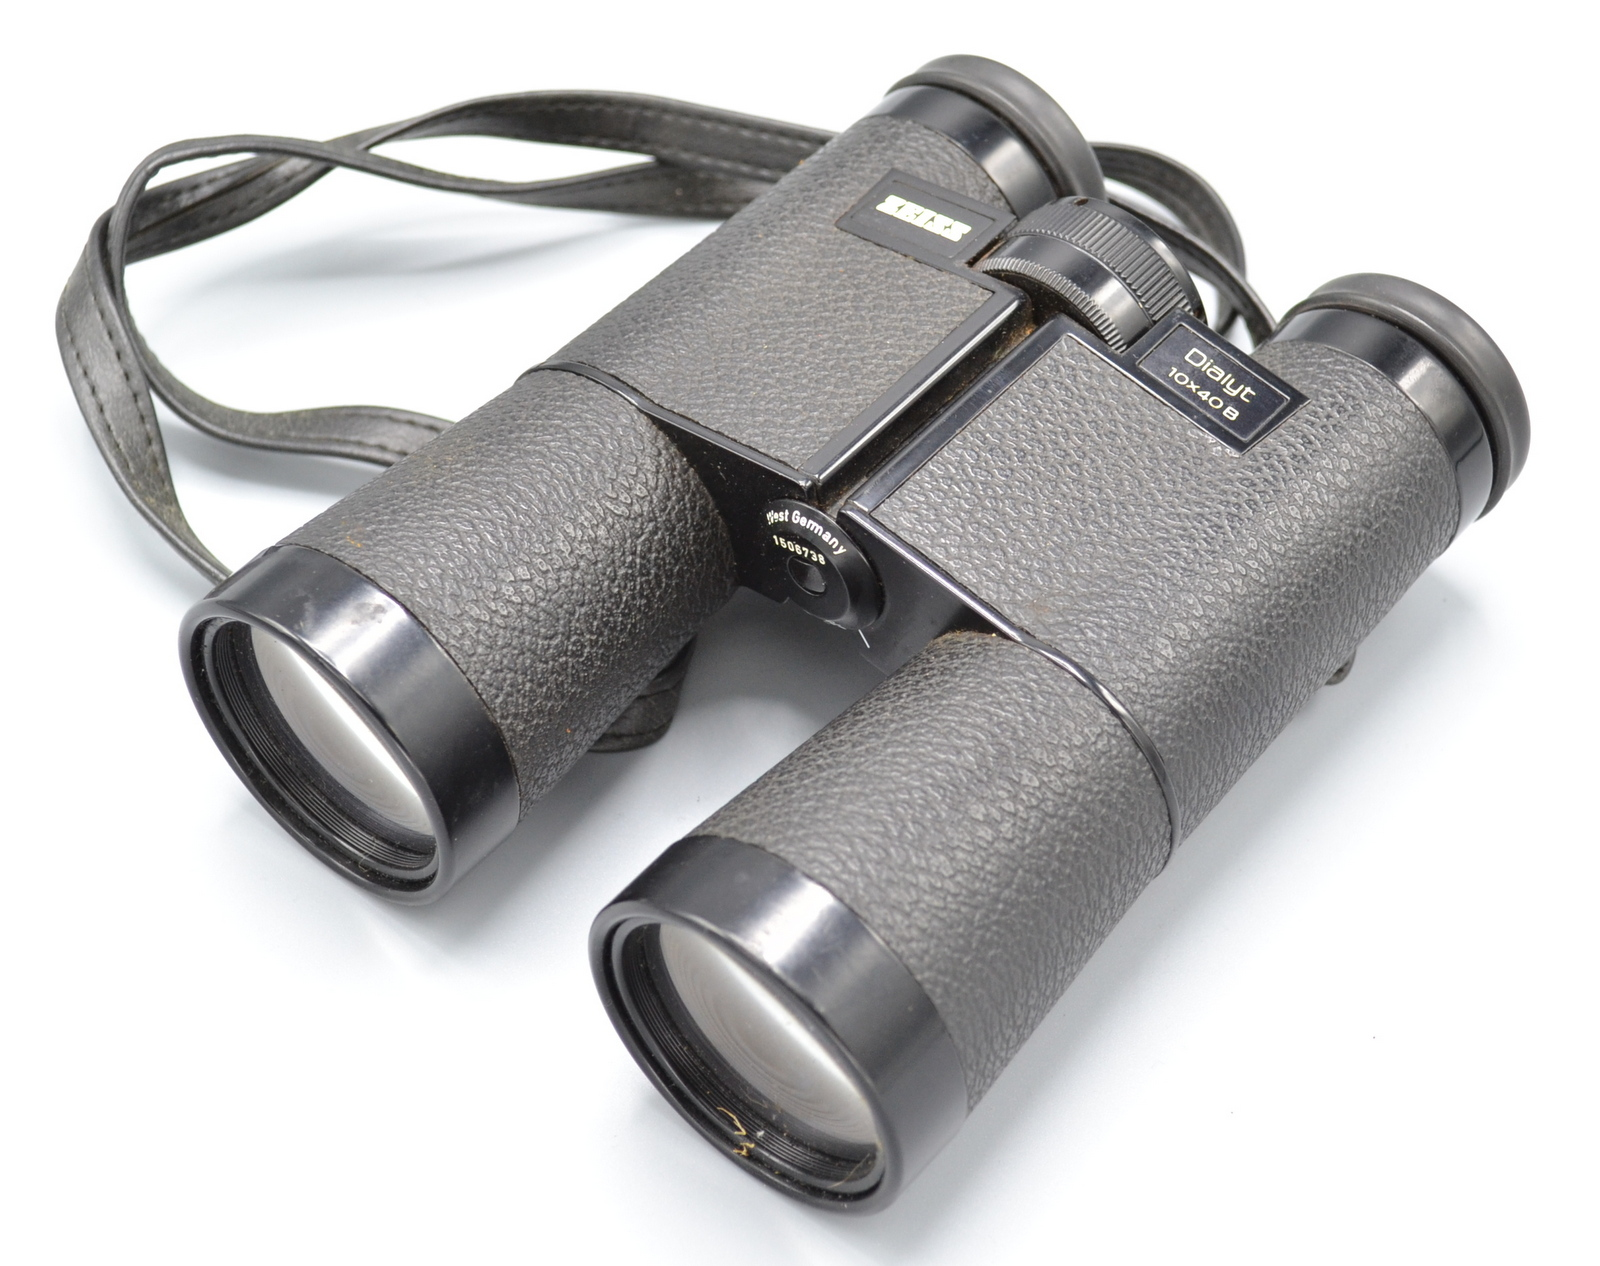 Lot 41 - A pair of Zeiss Dialyt 10x40 B binoculars in a brown leather case.